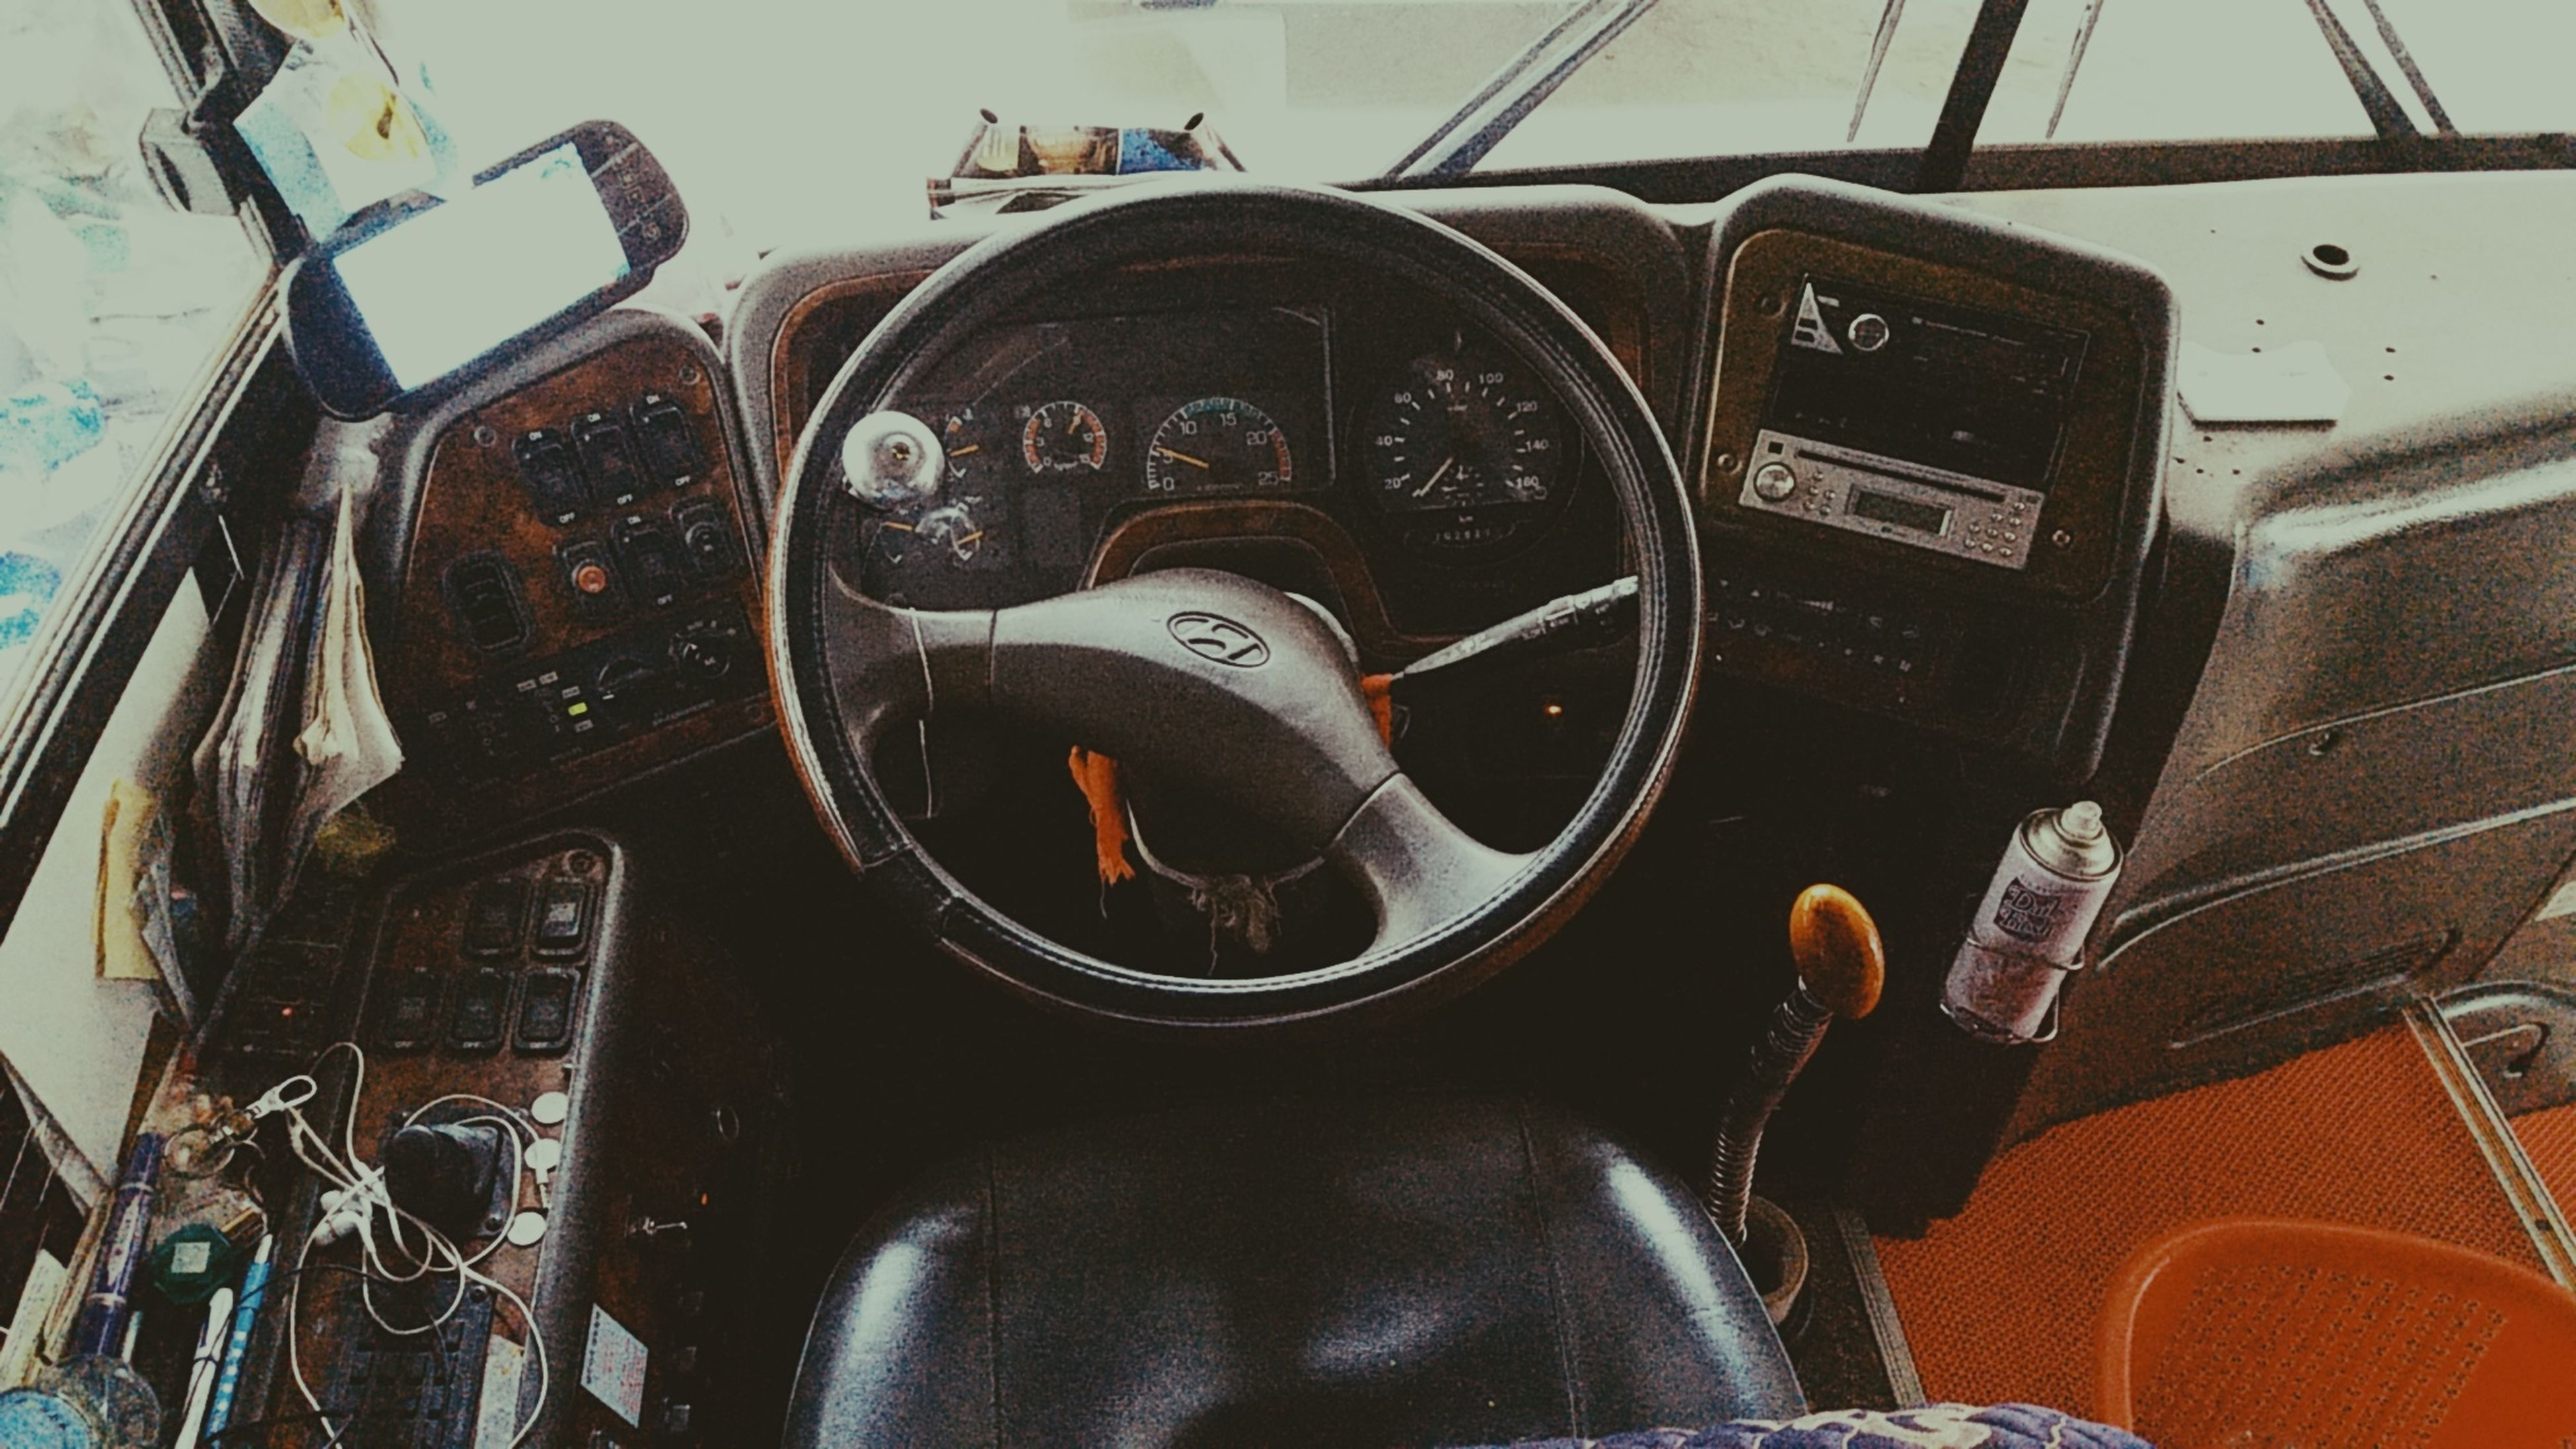 vehicle interior, dashboard, transportation, car, mode of transport, steering wheel, control, speedometer, car interior, land vehicle, close-up, control panel, day, technology, no people, indoors, gauge, cockpit